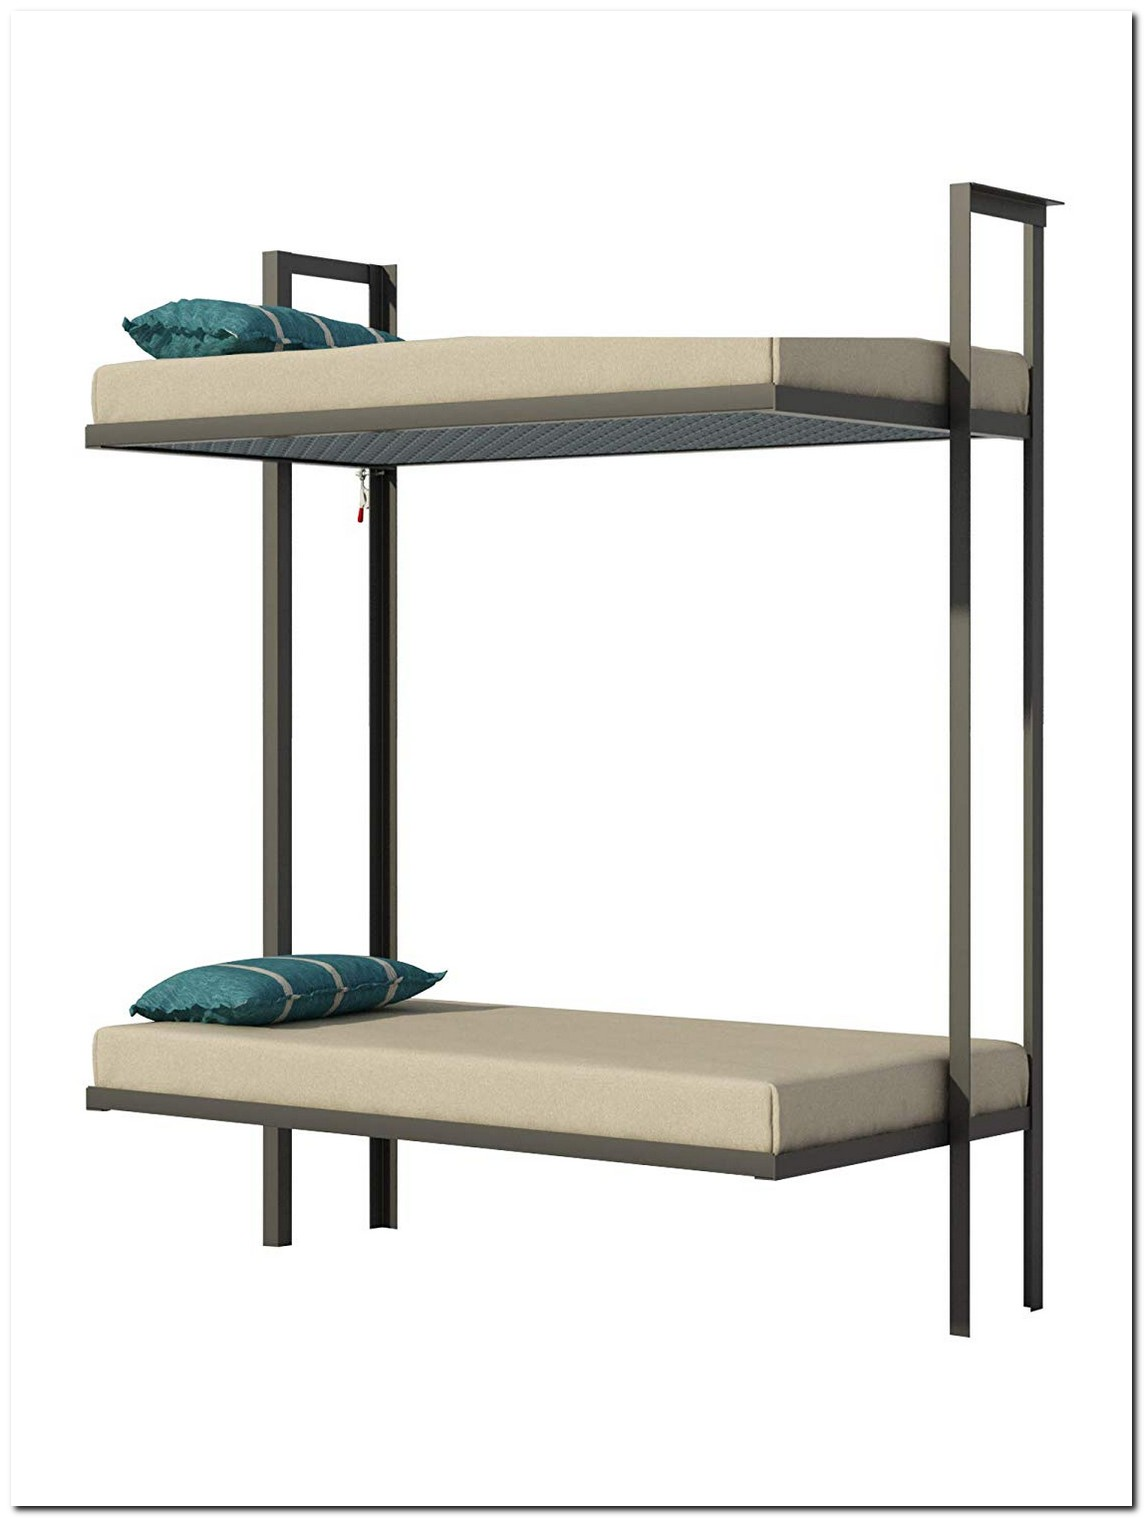 How to successfully choose bunk beds for kids 7